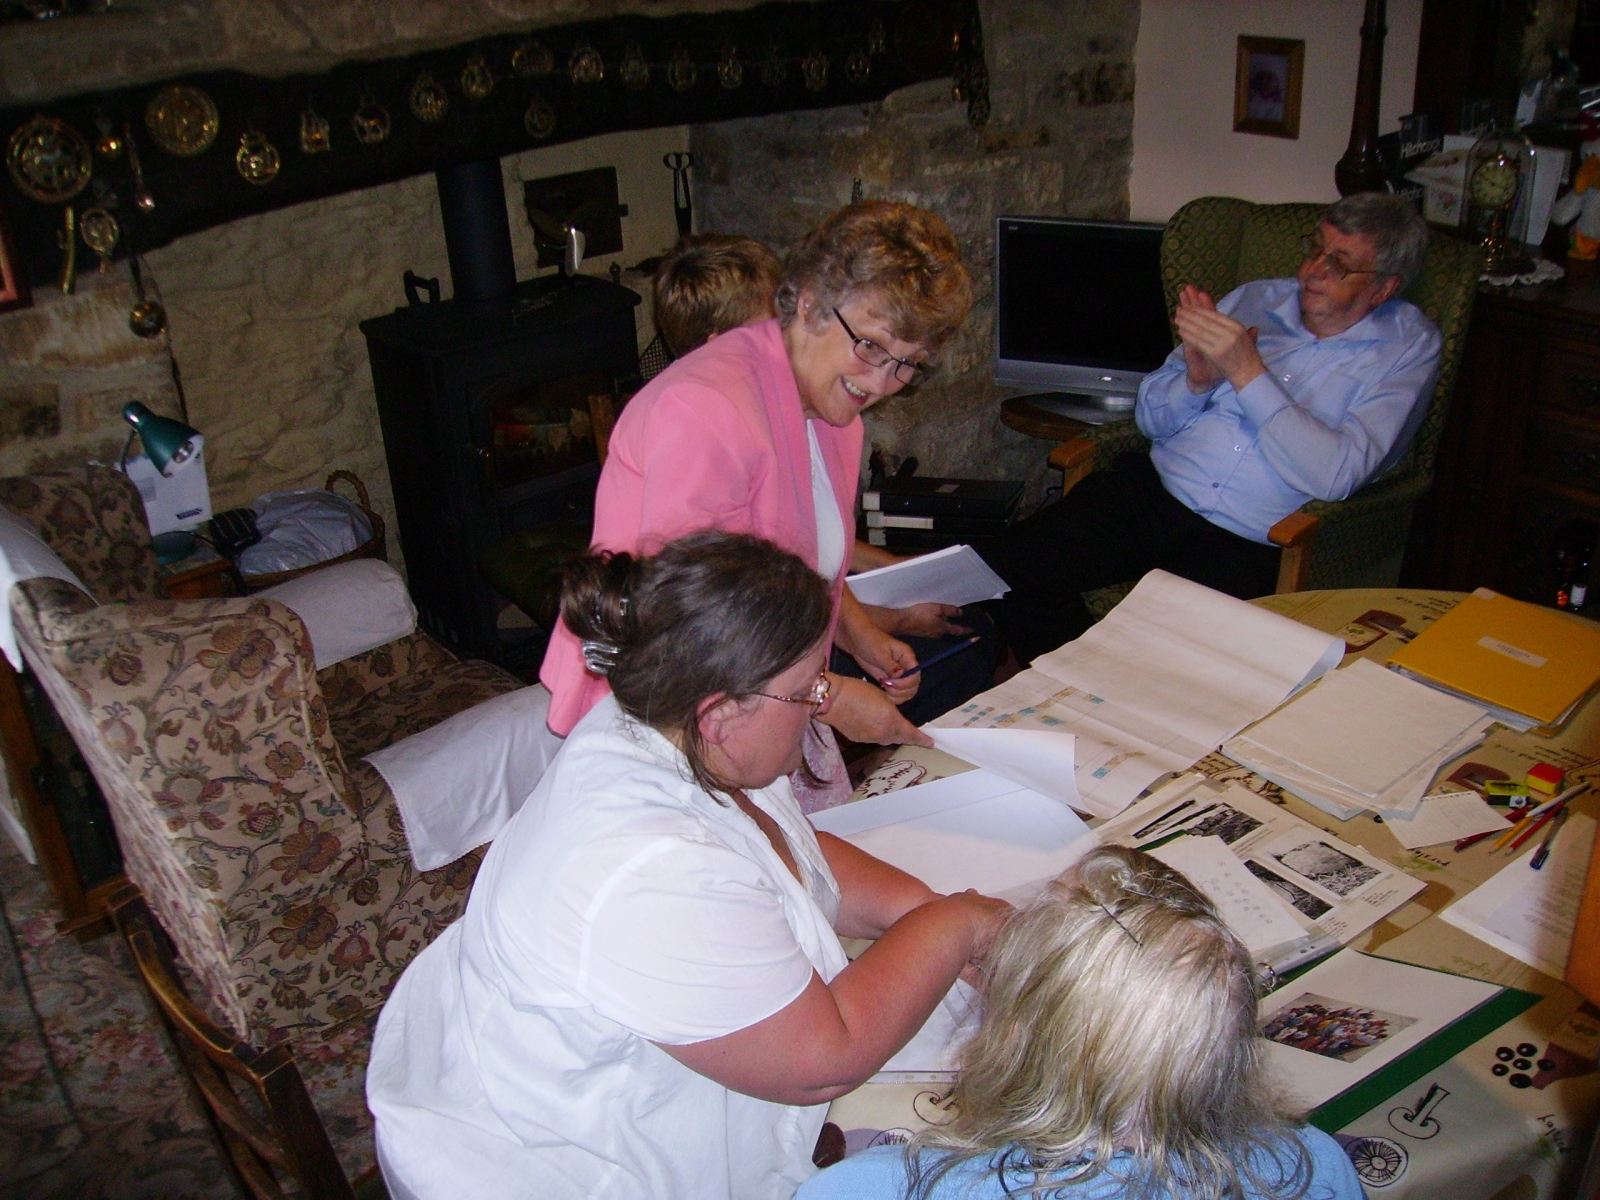 July 2010 Eaglestone family research group. Round the table, bottom to top. Joyce Eaglestone (wife of Roy), Katherine Eaglestone (daughter of Joyce), Maureen Hale (wife of Michael), Chris Edbury (village archivist), Michael Hale (descended from MB Eaglestones).